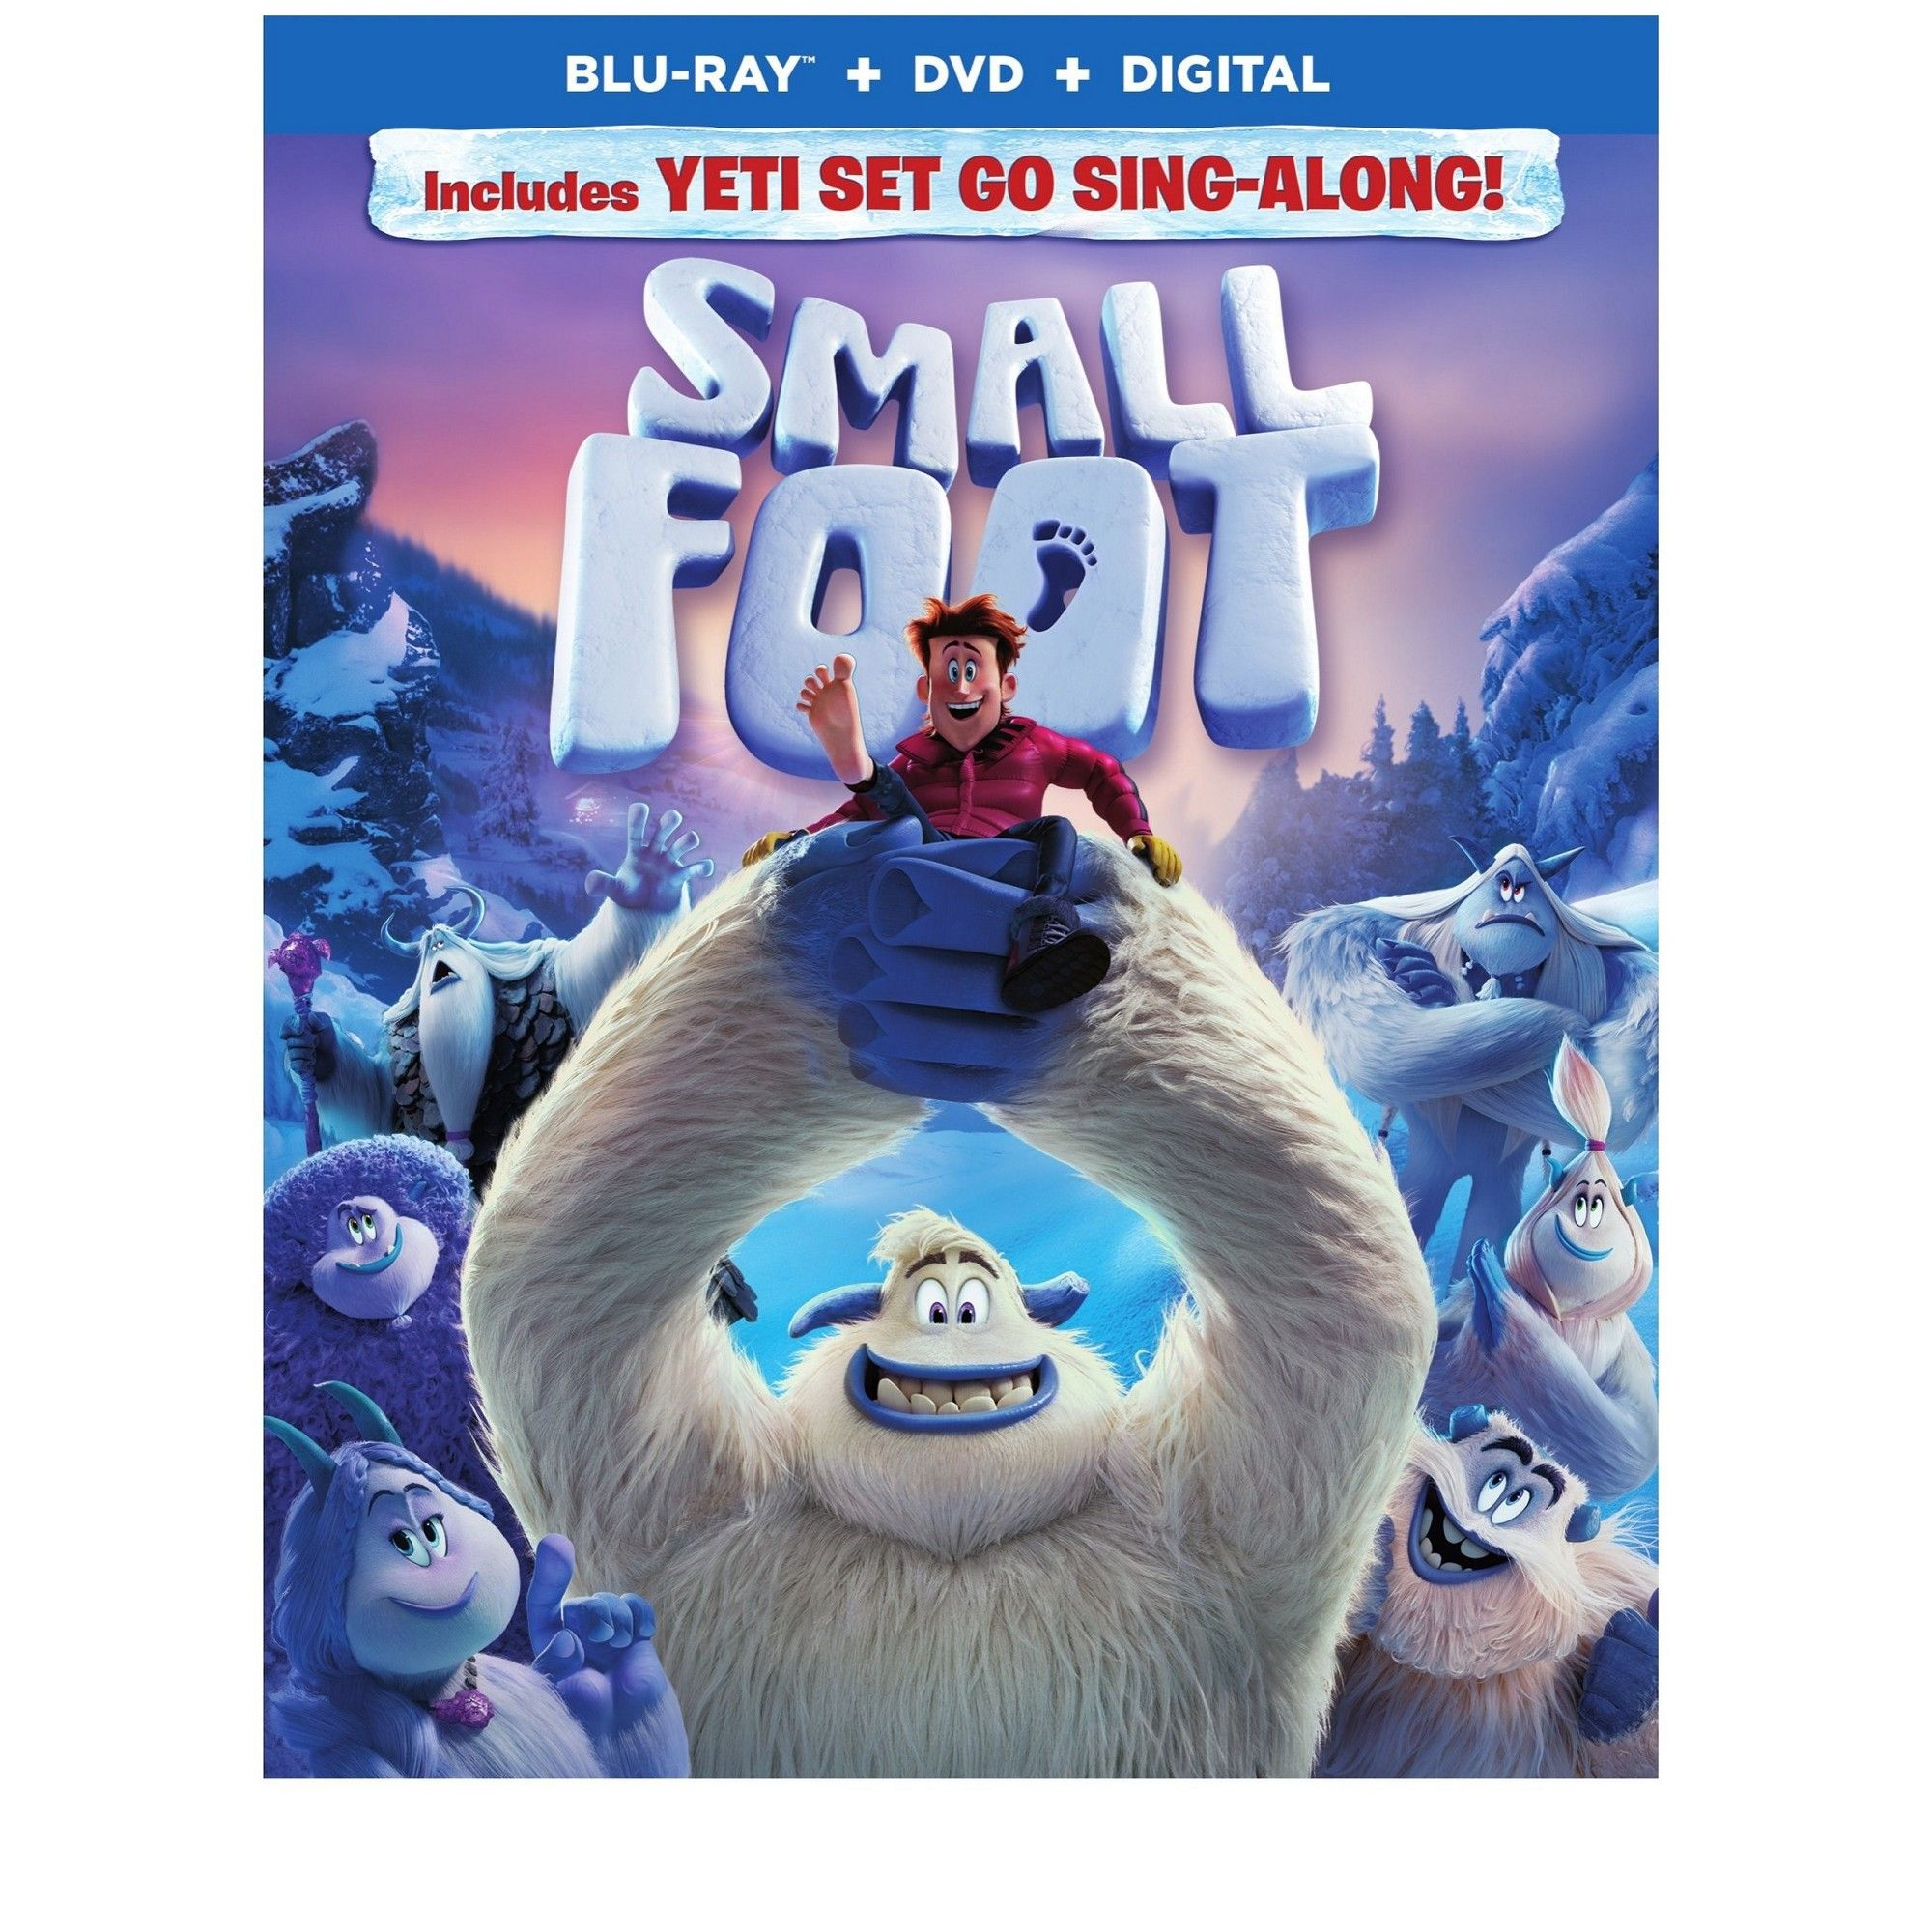 Smallfoot Blu Ray Free Movies Online Animated Movies Movies Online